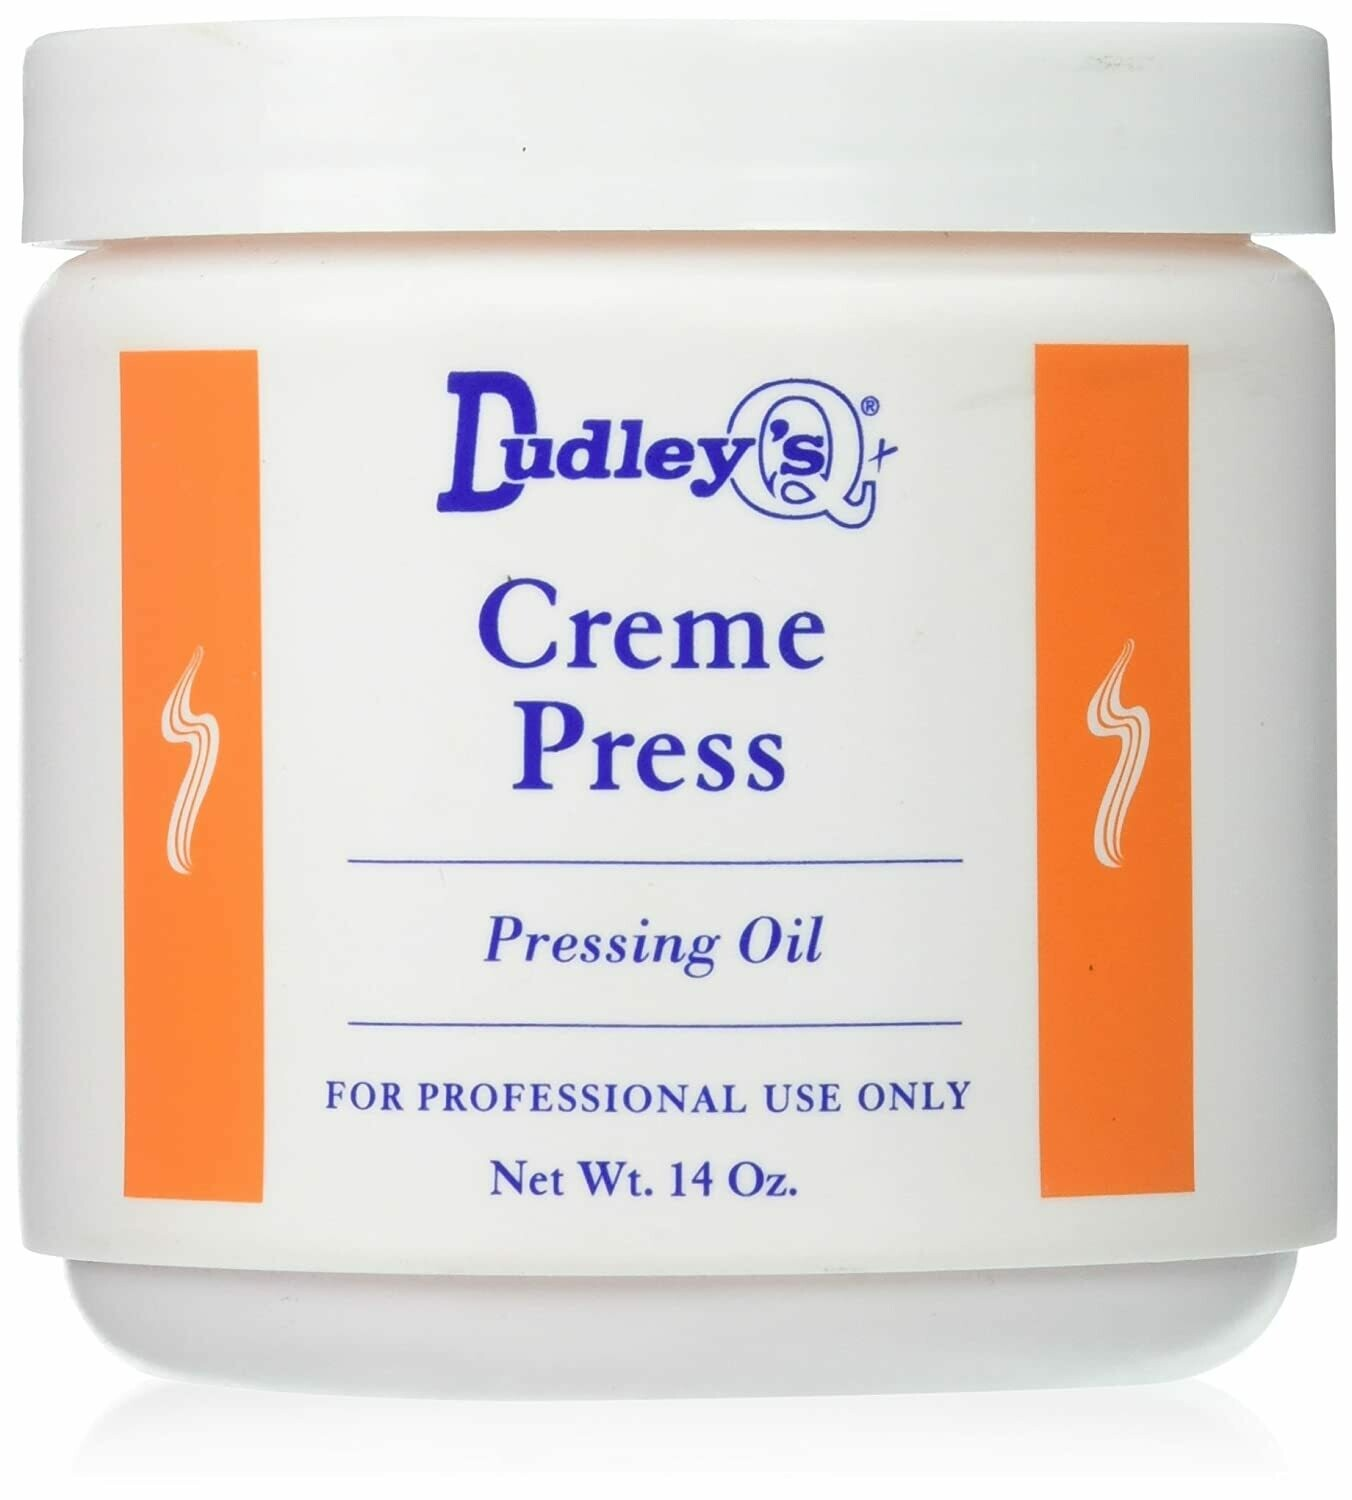 Dudley's Creme Press Pressing Oil